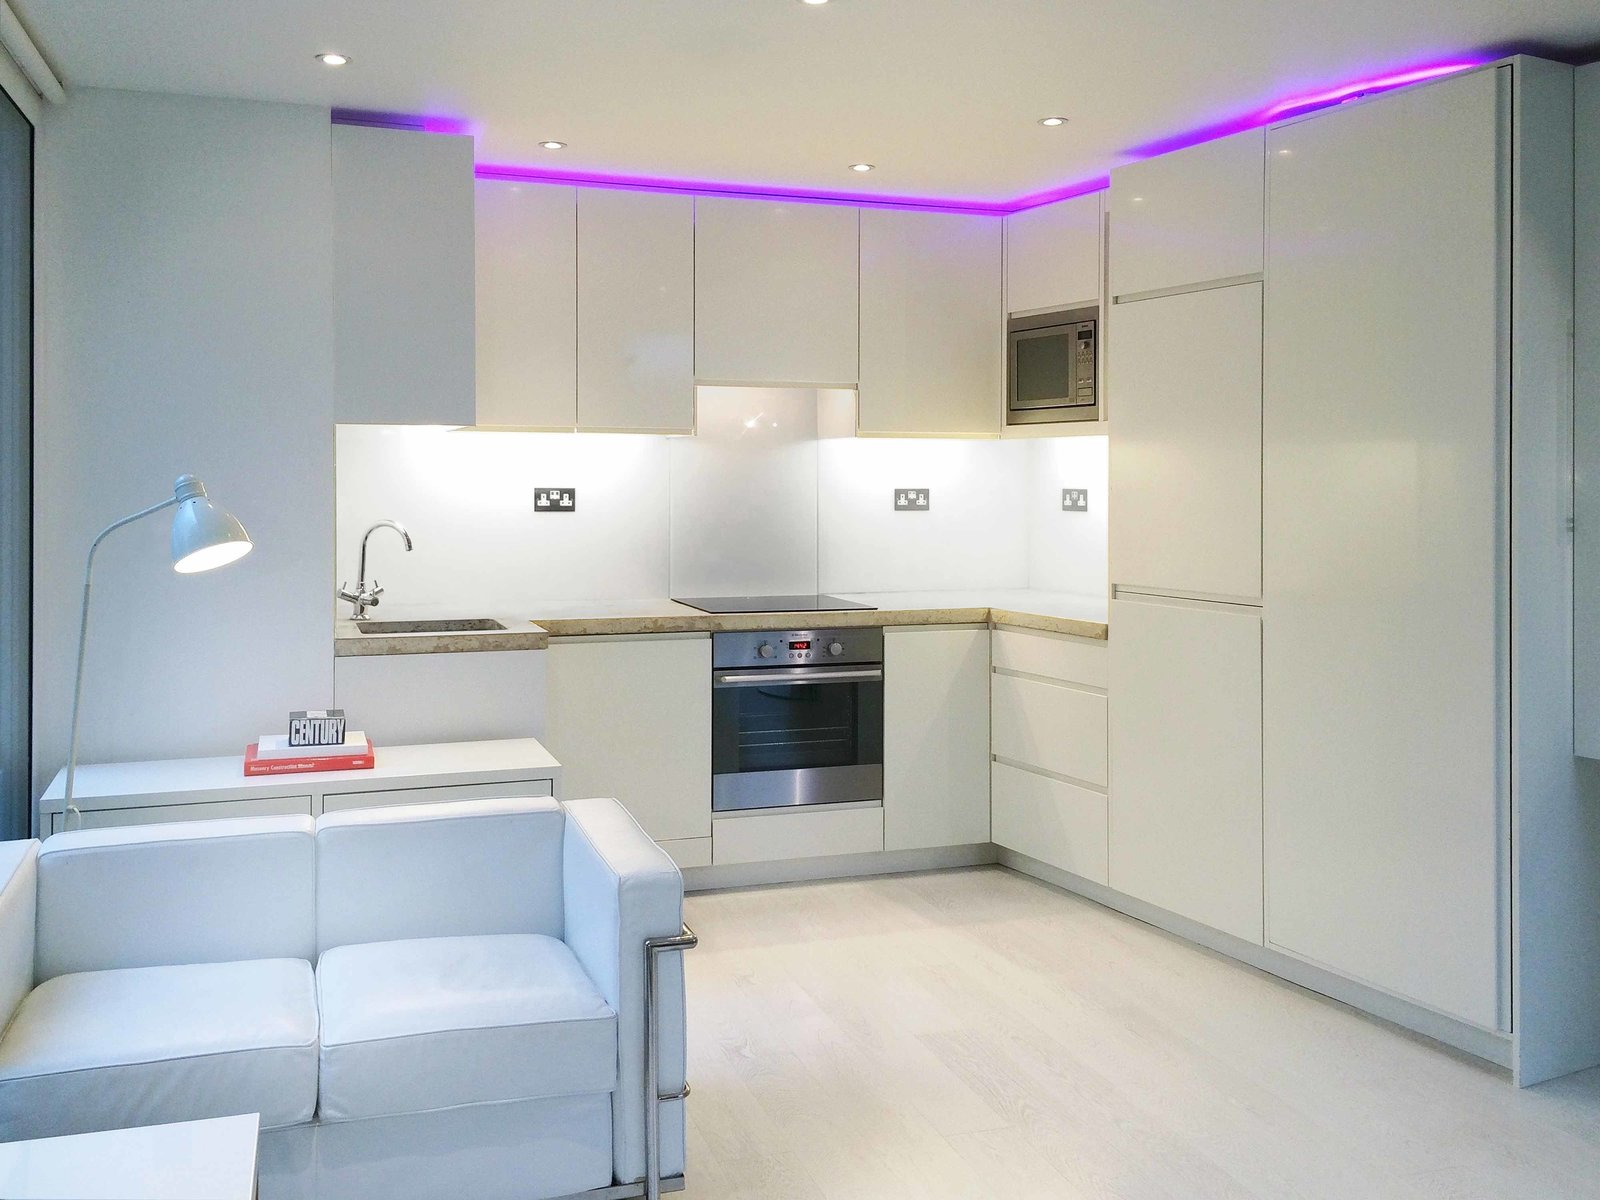 The kitchen cupboards have the same high-gloss cladding as the collapsible workstation. The countertop is polished concrete from Shaw Interiors, and the lighting is inset LED's. The space also features recessed ceiling speakers from B&W.  Photo 7 of 7 in A Tiny Live/Work Addition Crowns a Historic London House